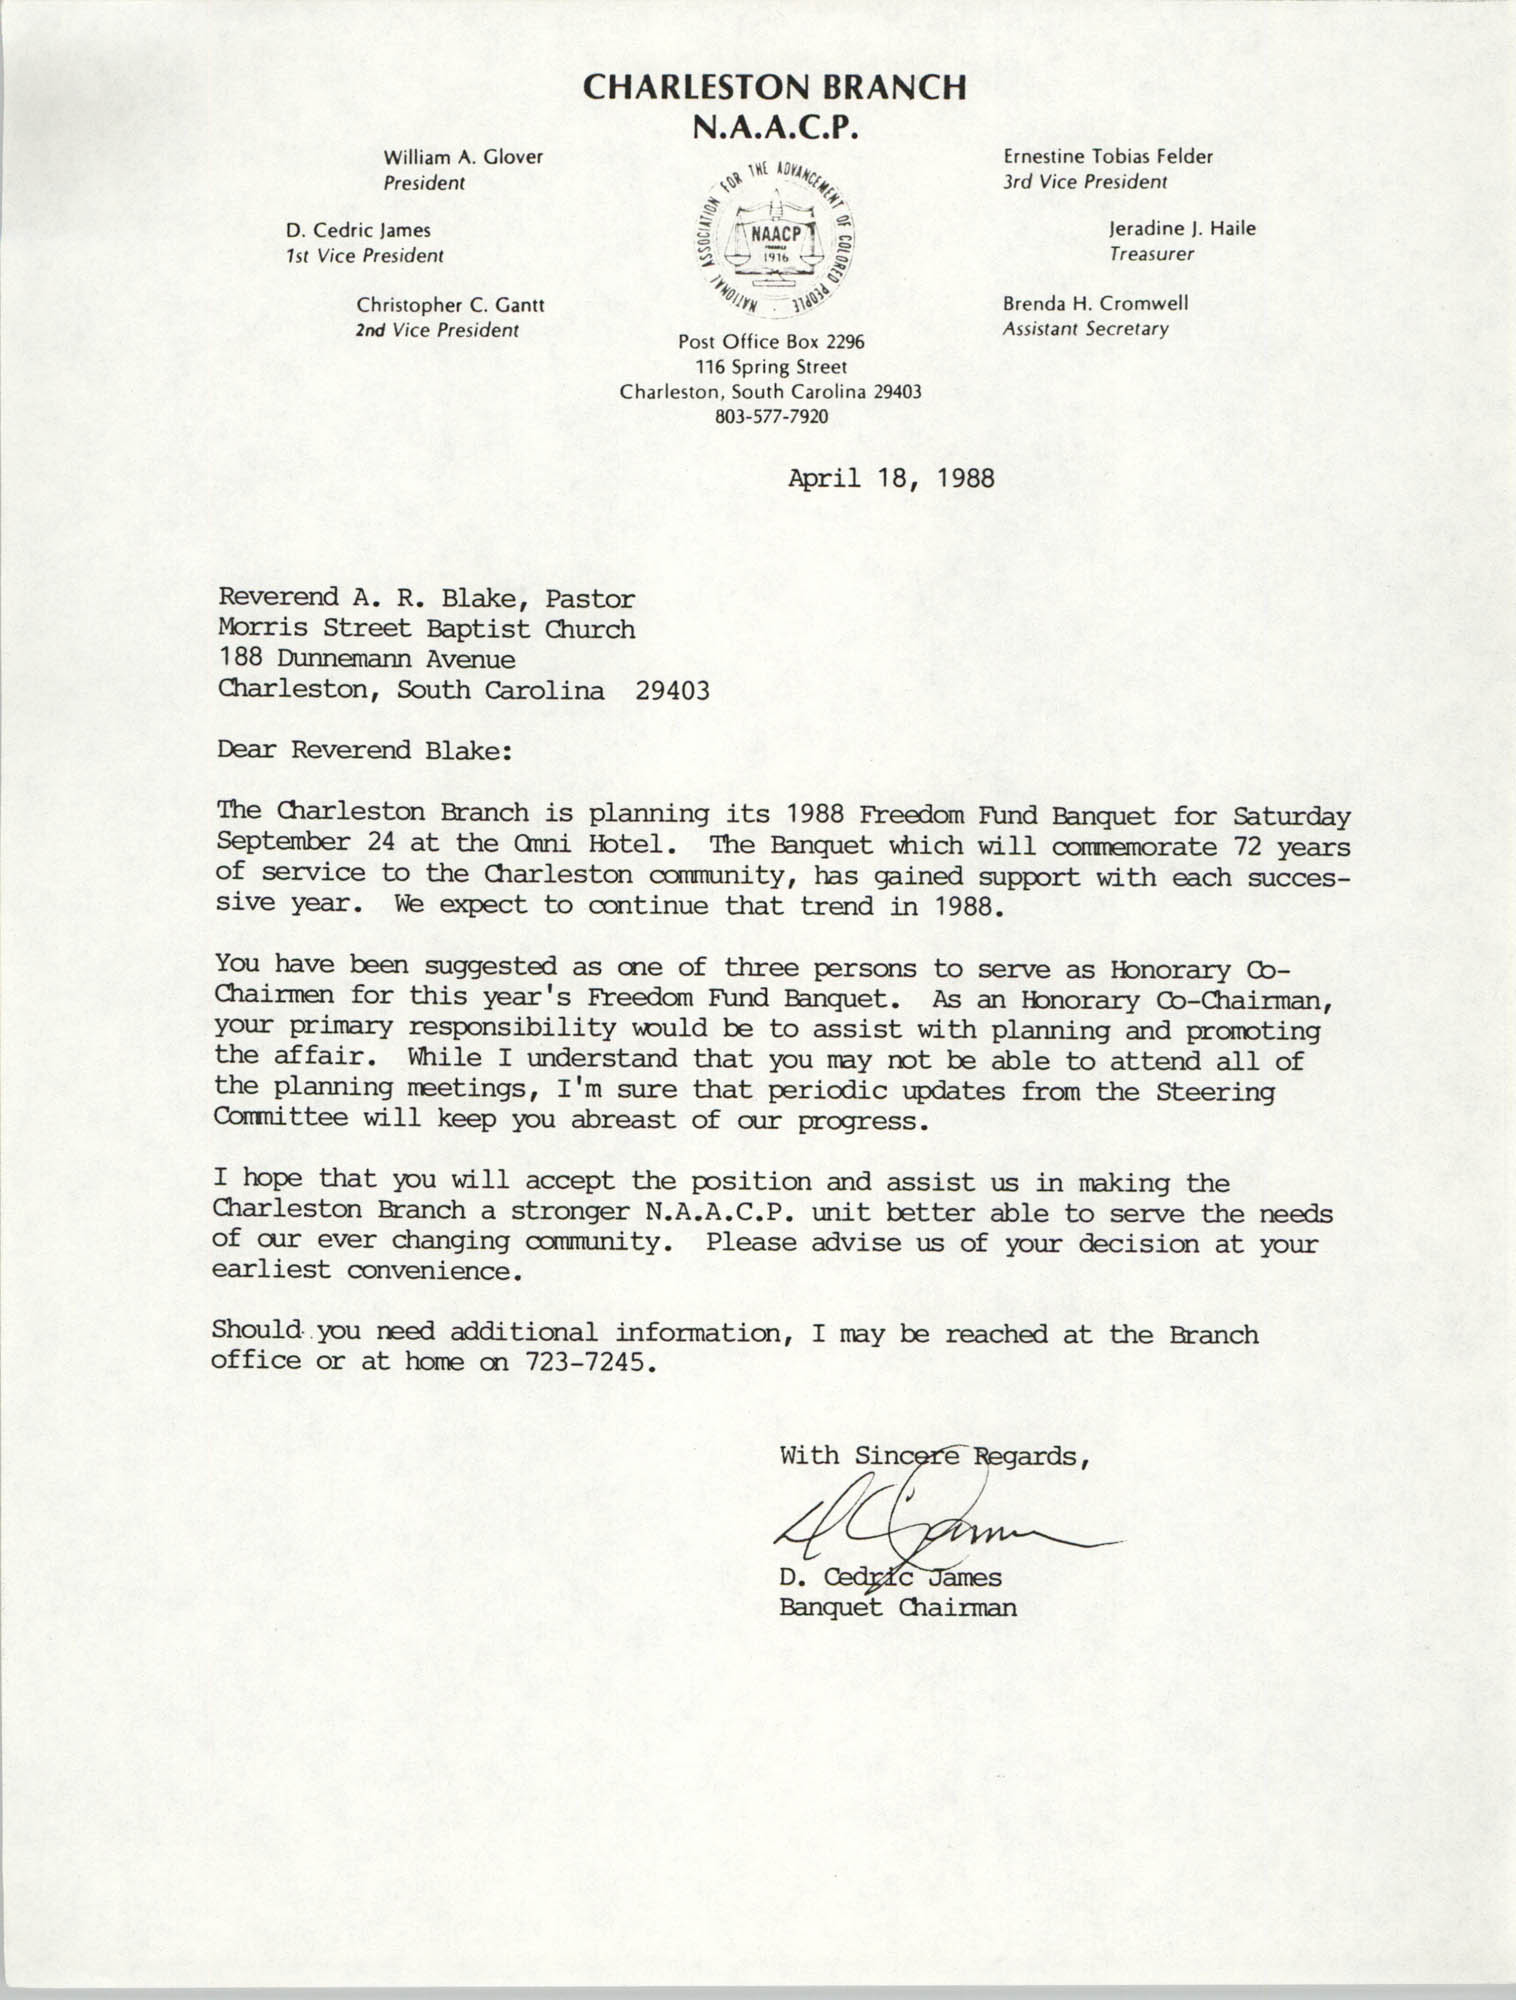 Letter from D. Cedric James to Reverend A.R. Blake, April 18, 1988